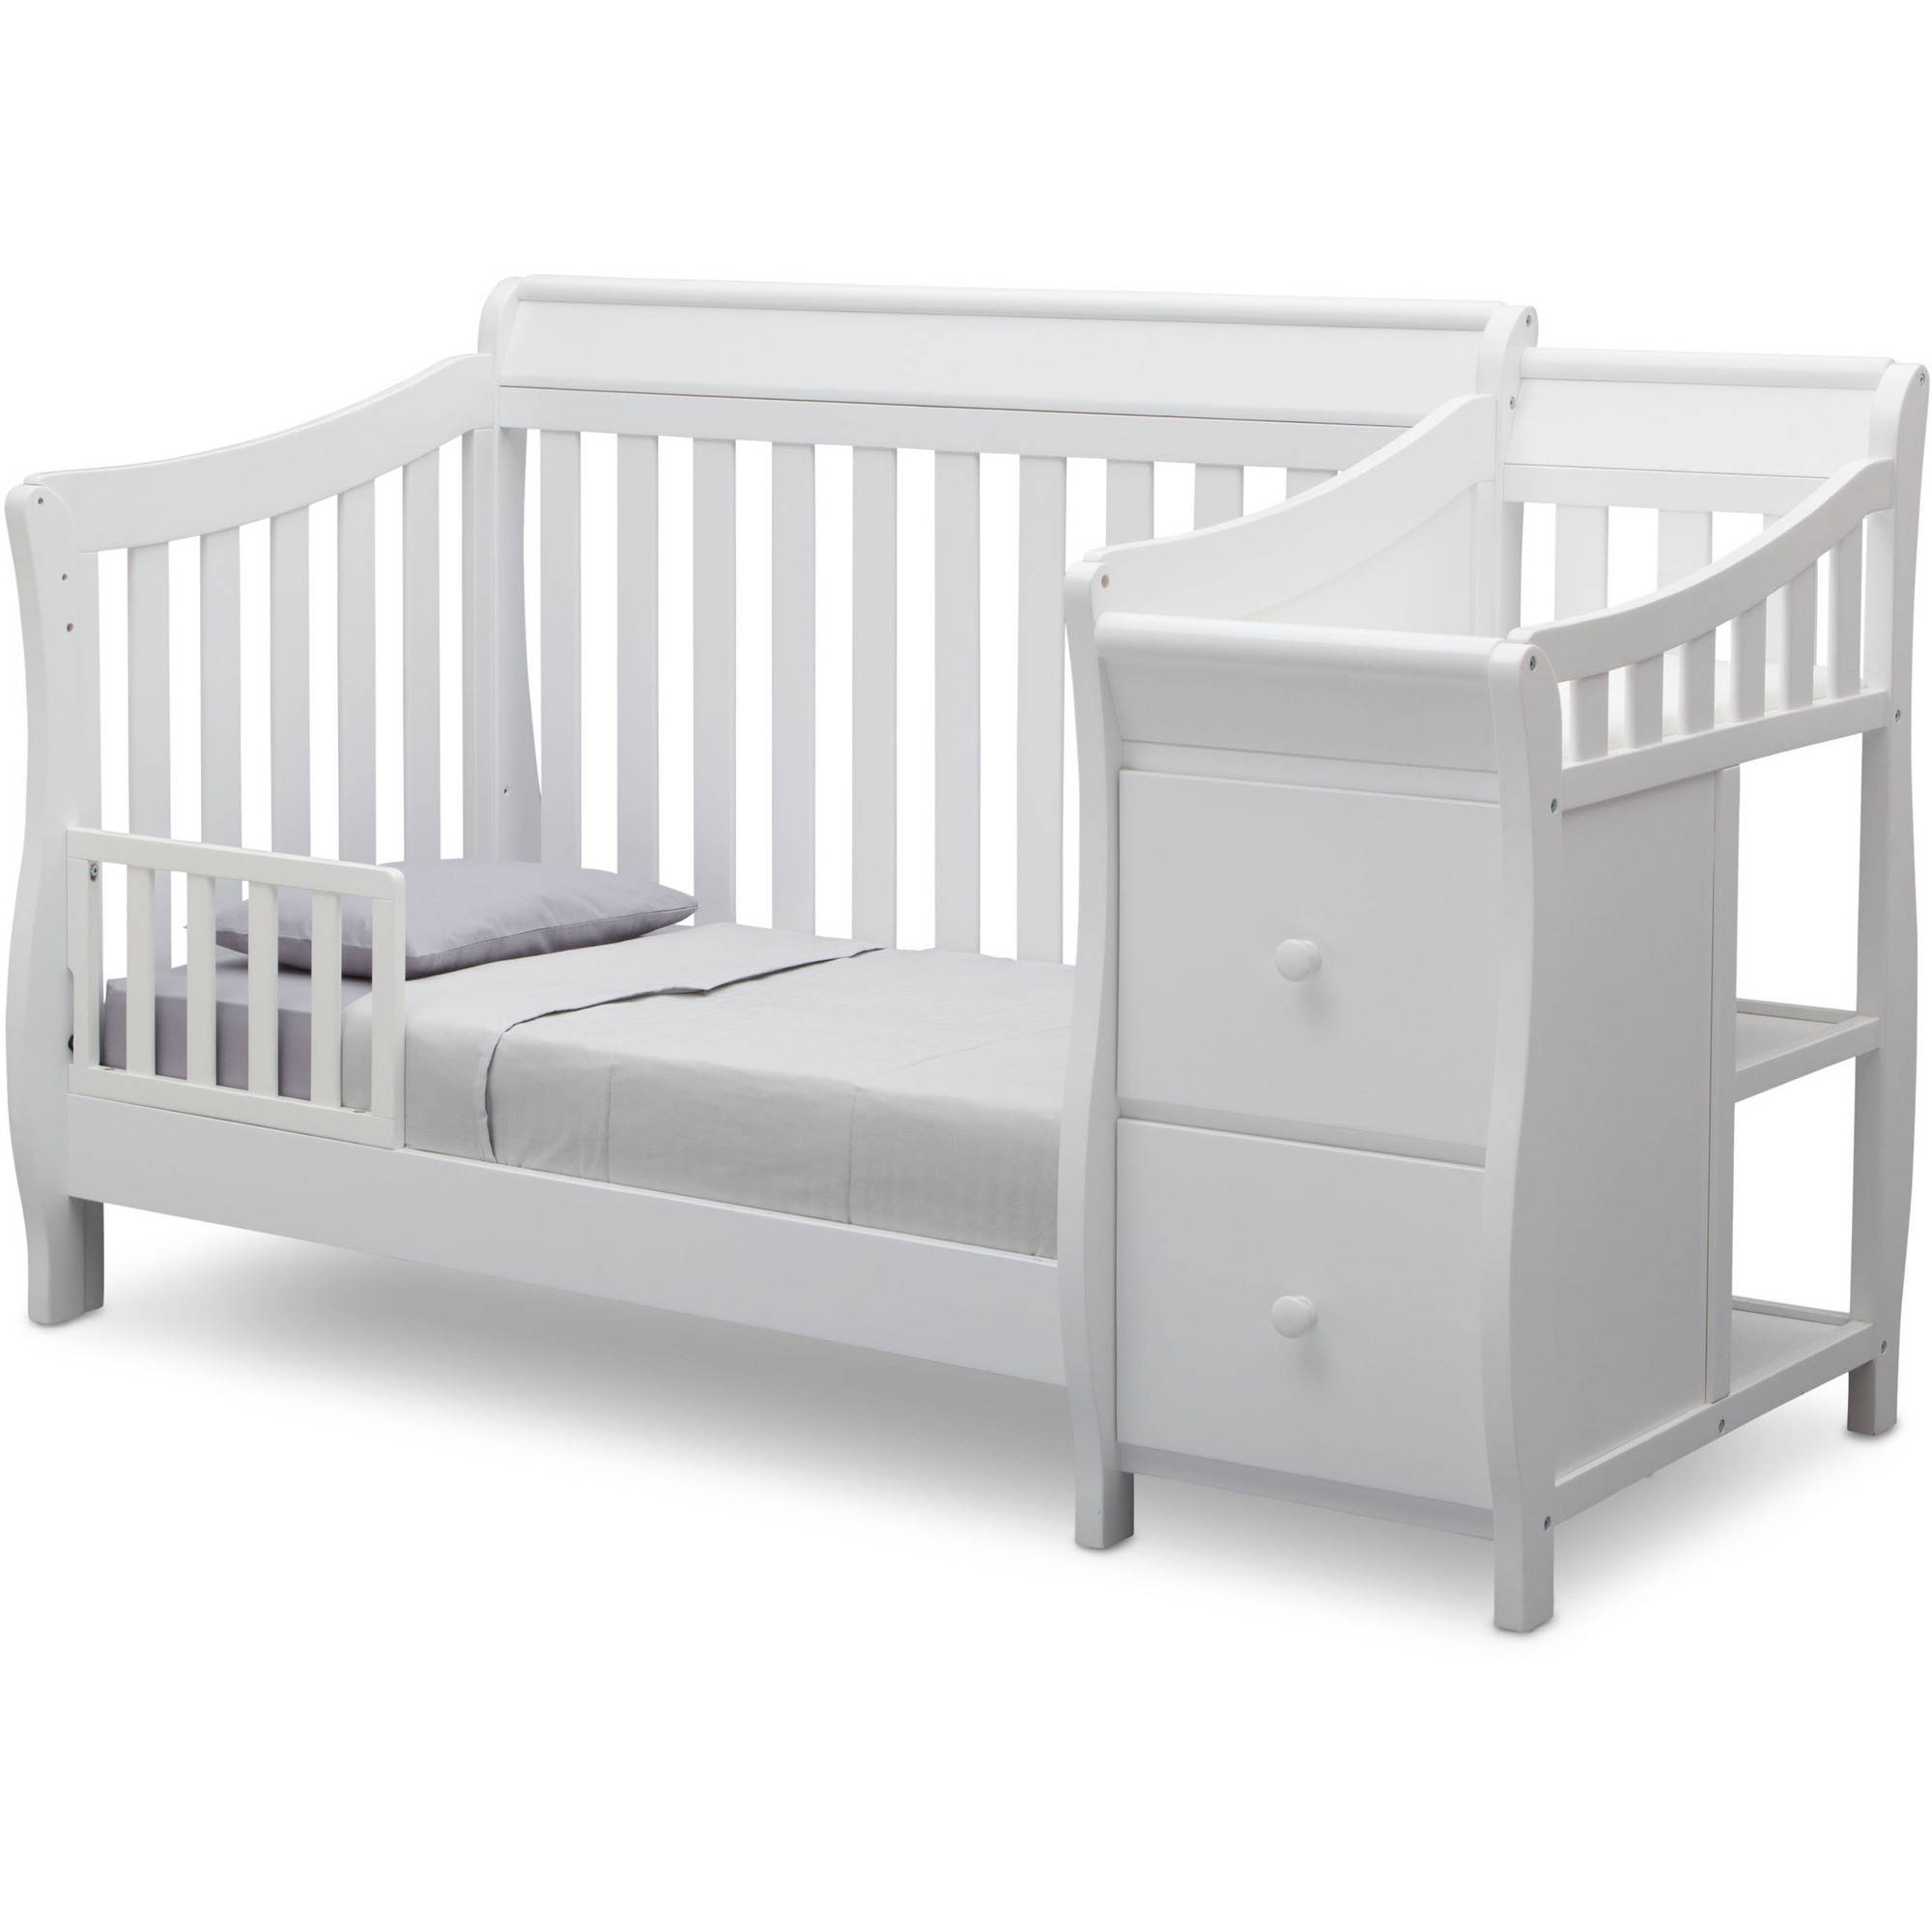 sleigh shop white bed gender pebble wood light drawers with drawer changing size effective in furniture gray table and underneath delta bassinet a habits crib children of graco small full dark baby newborn highly neutral solano bedding cribs rage convertible